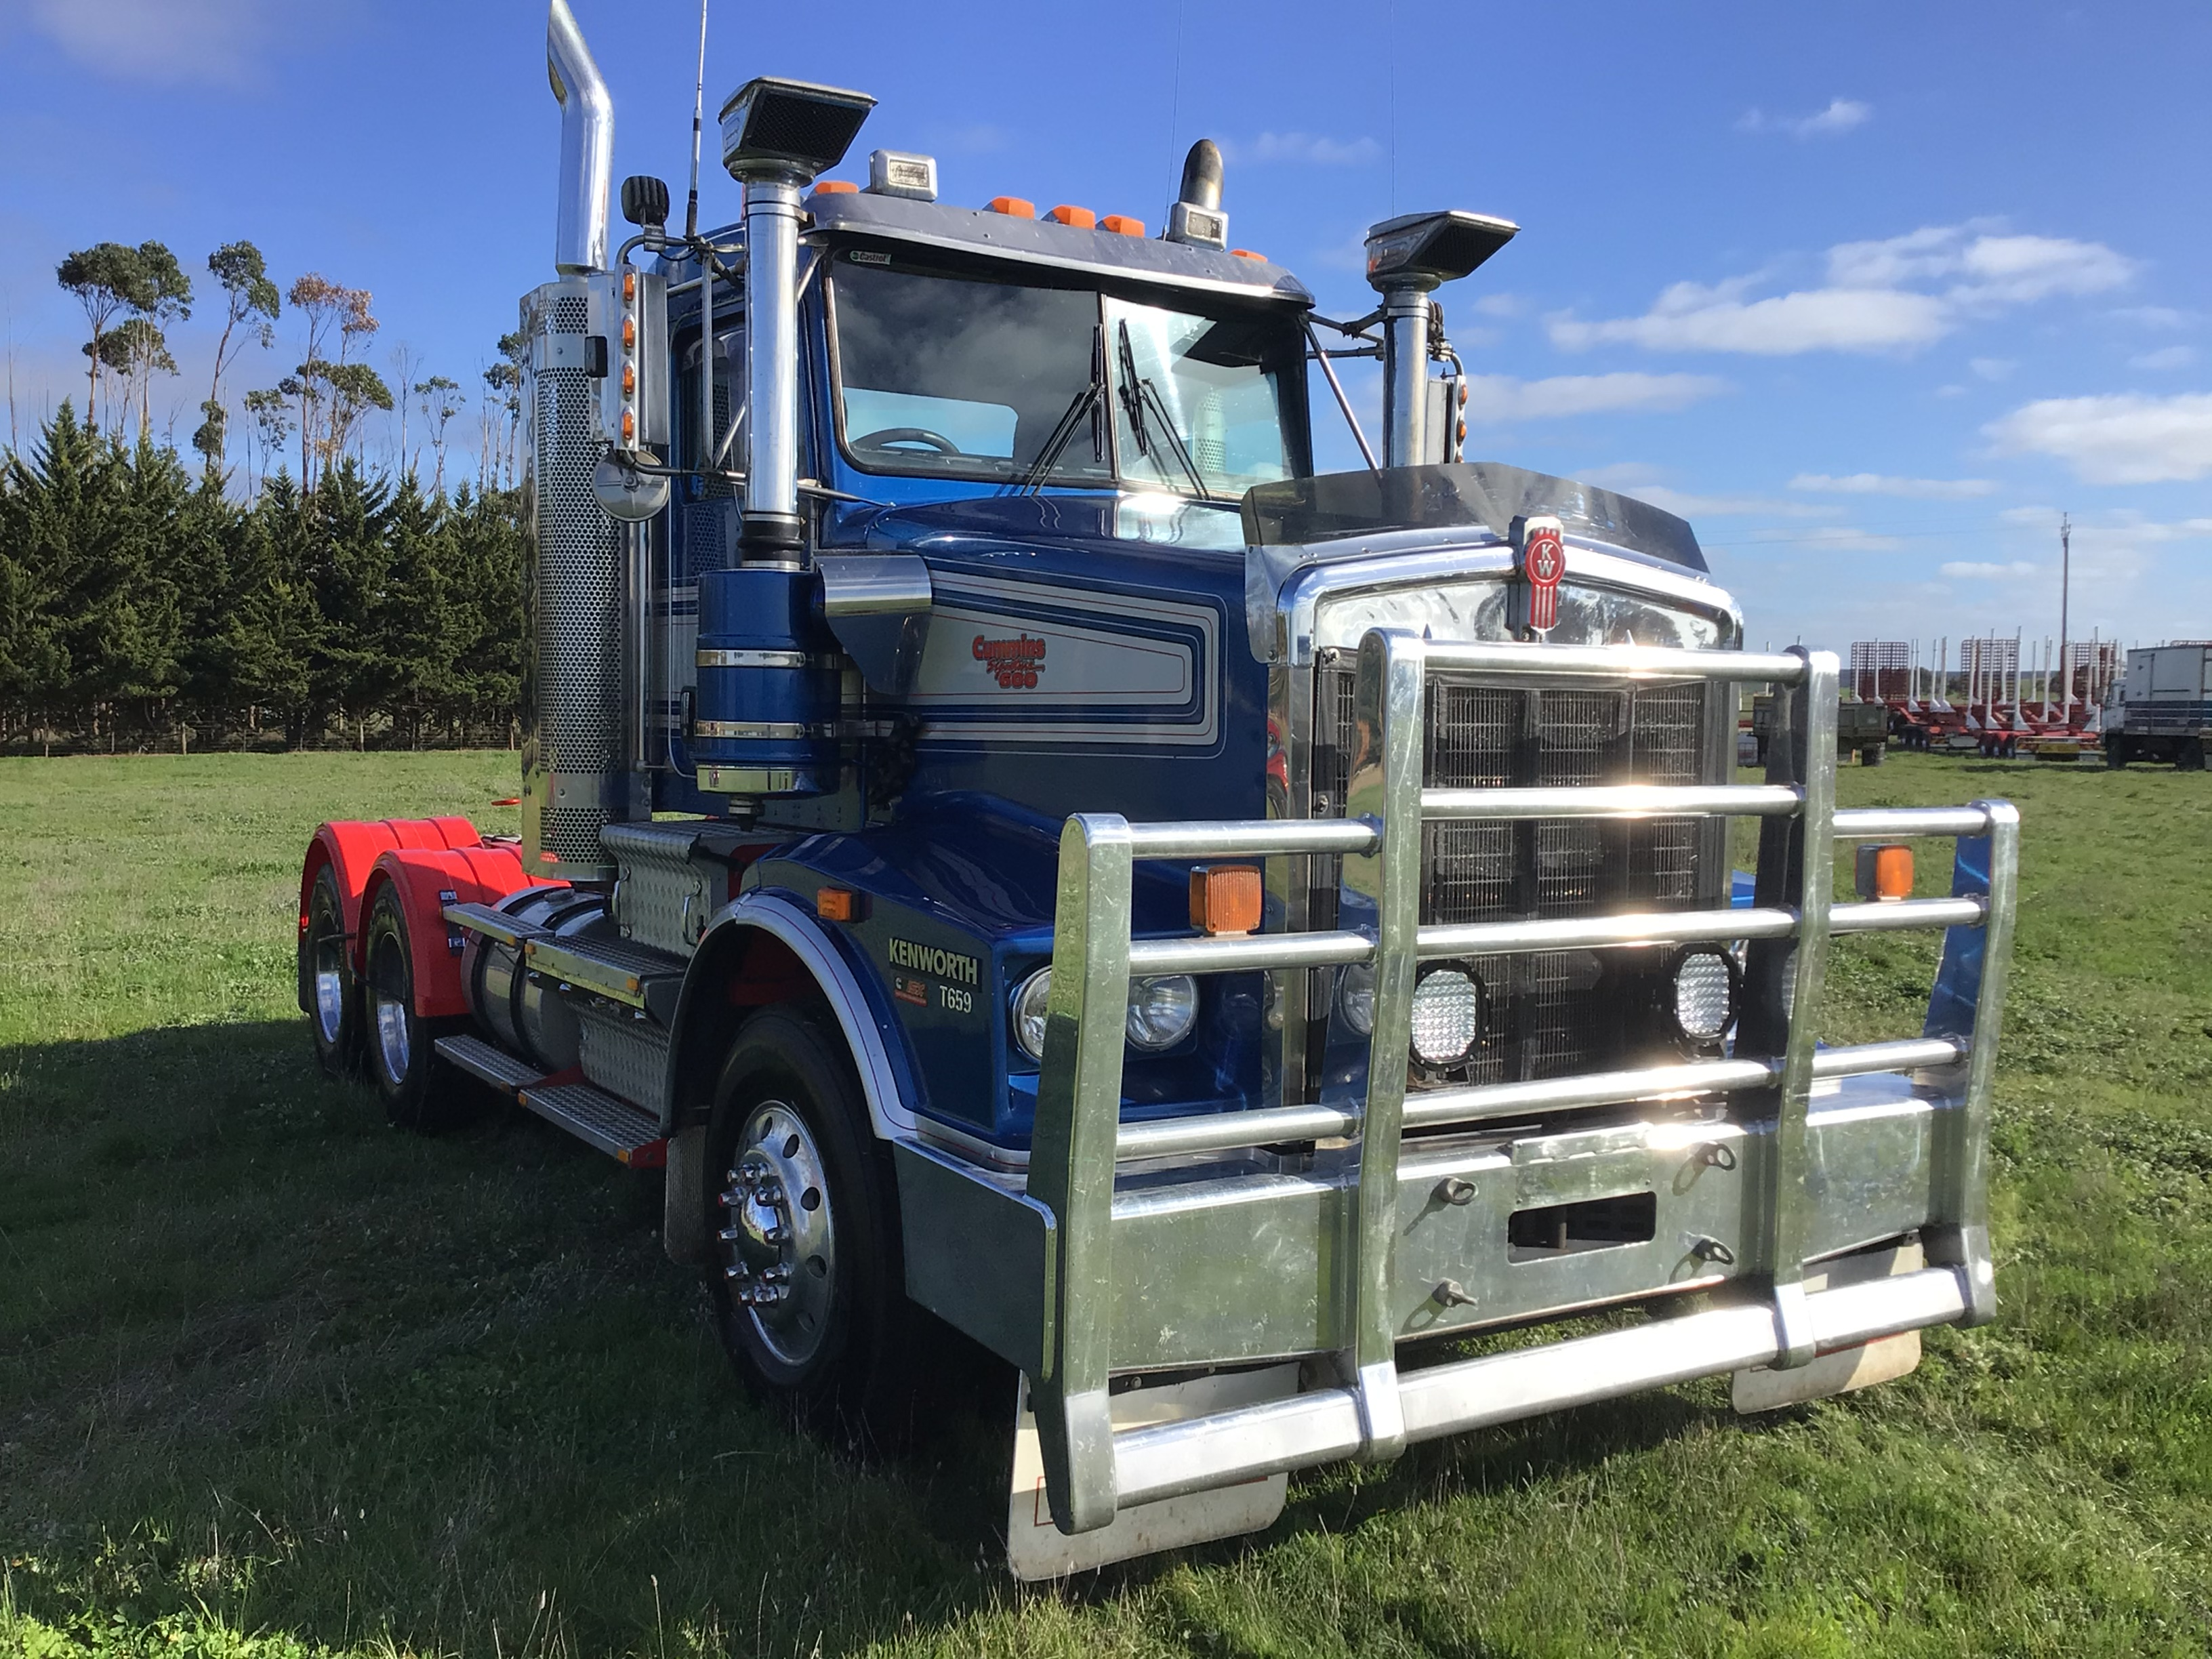 2011 Kenworth T 659 6 x 4 Cab Chassis Truck